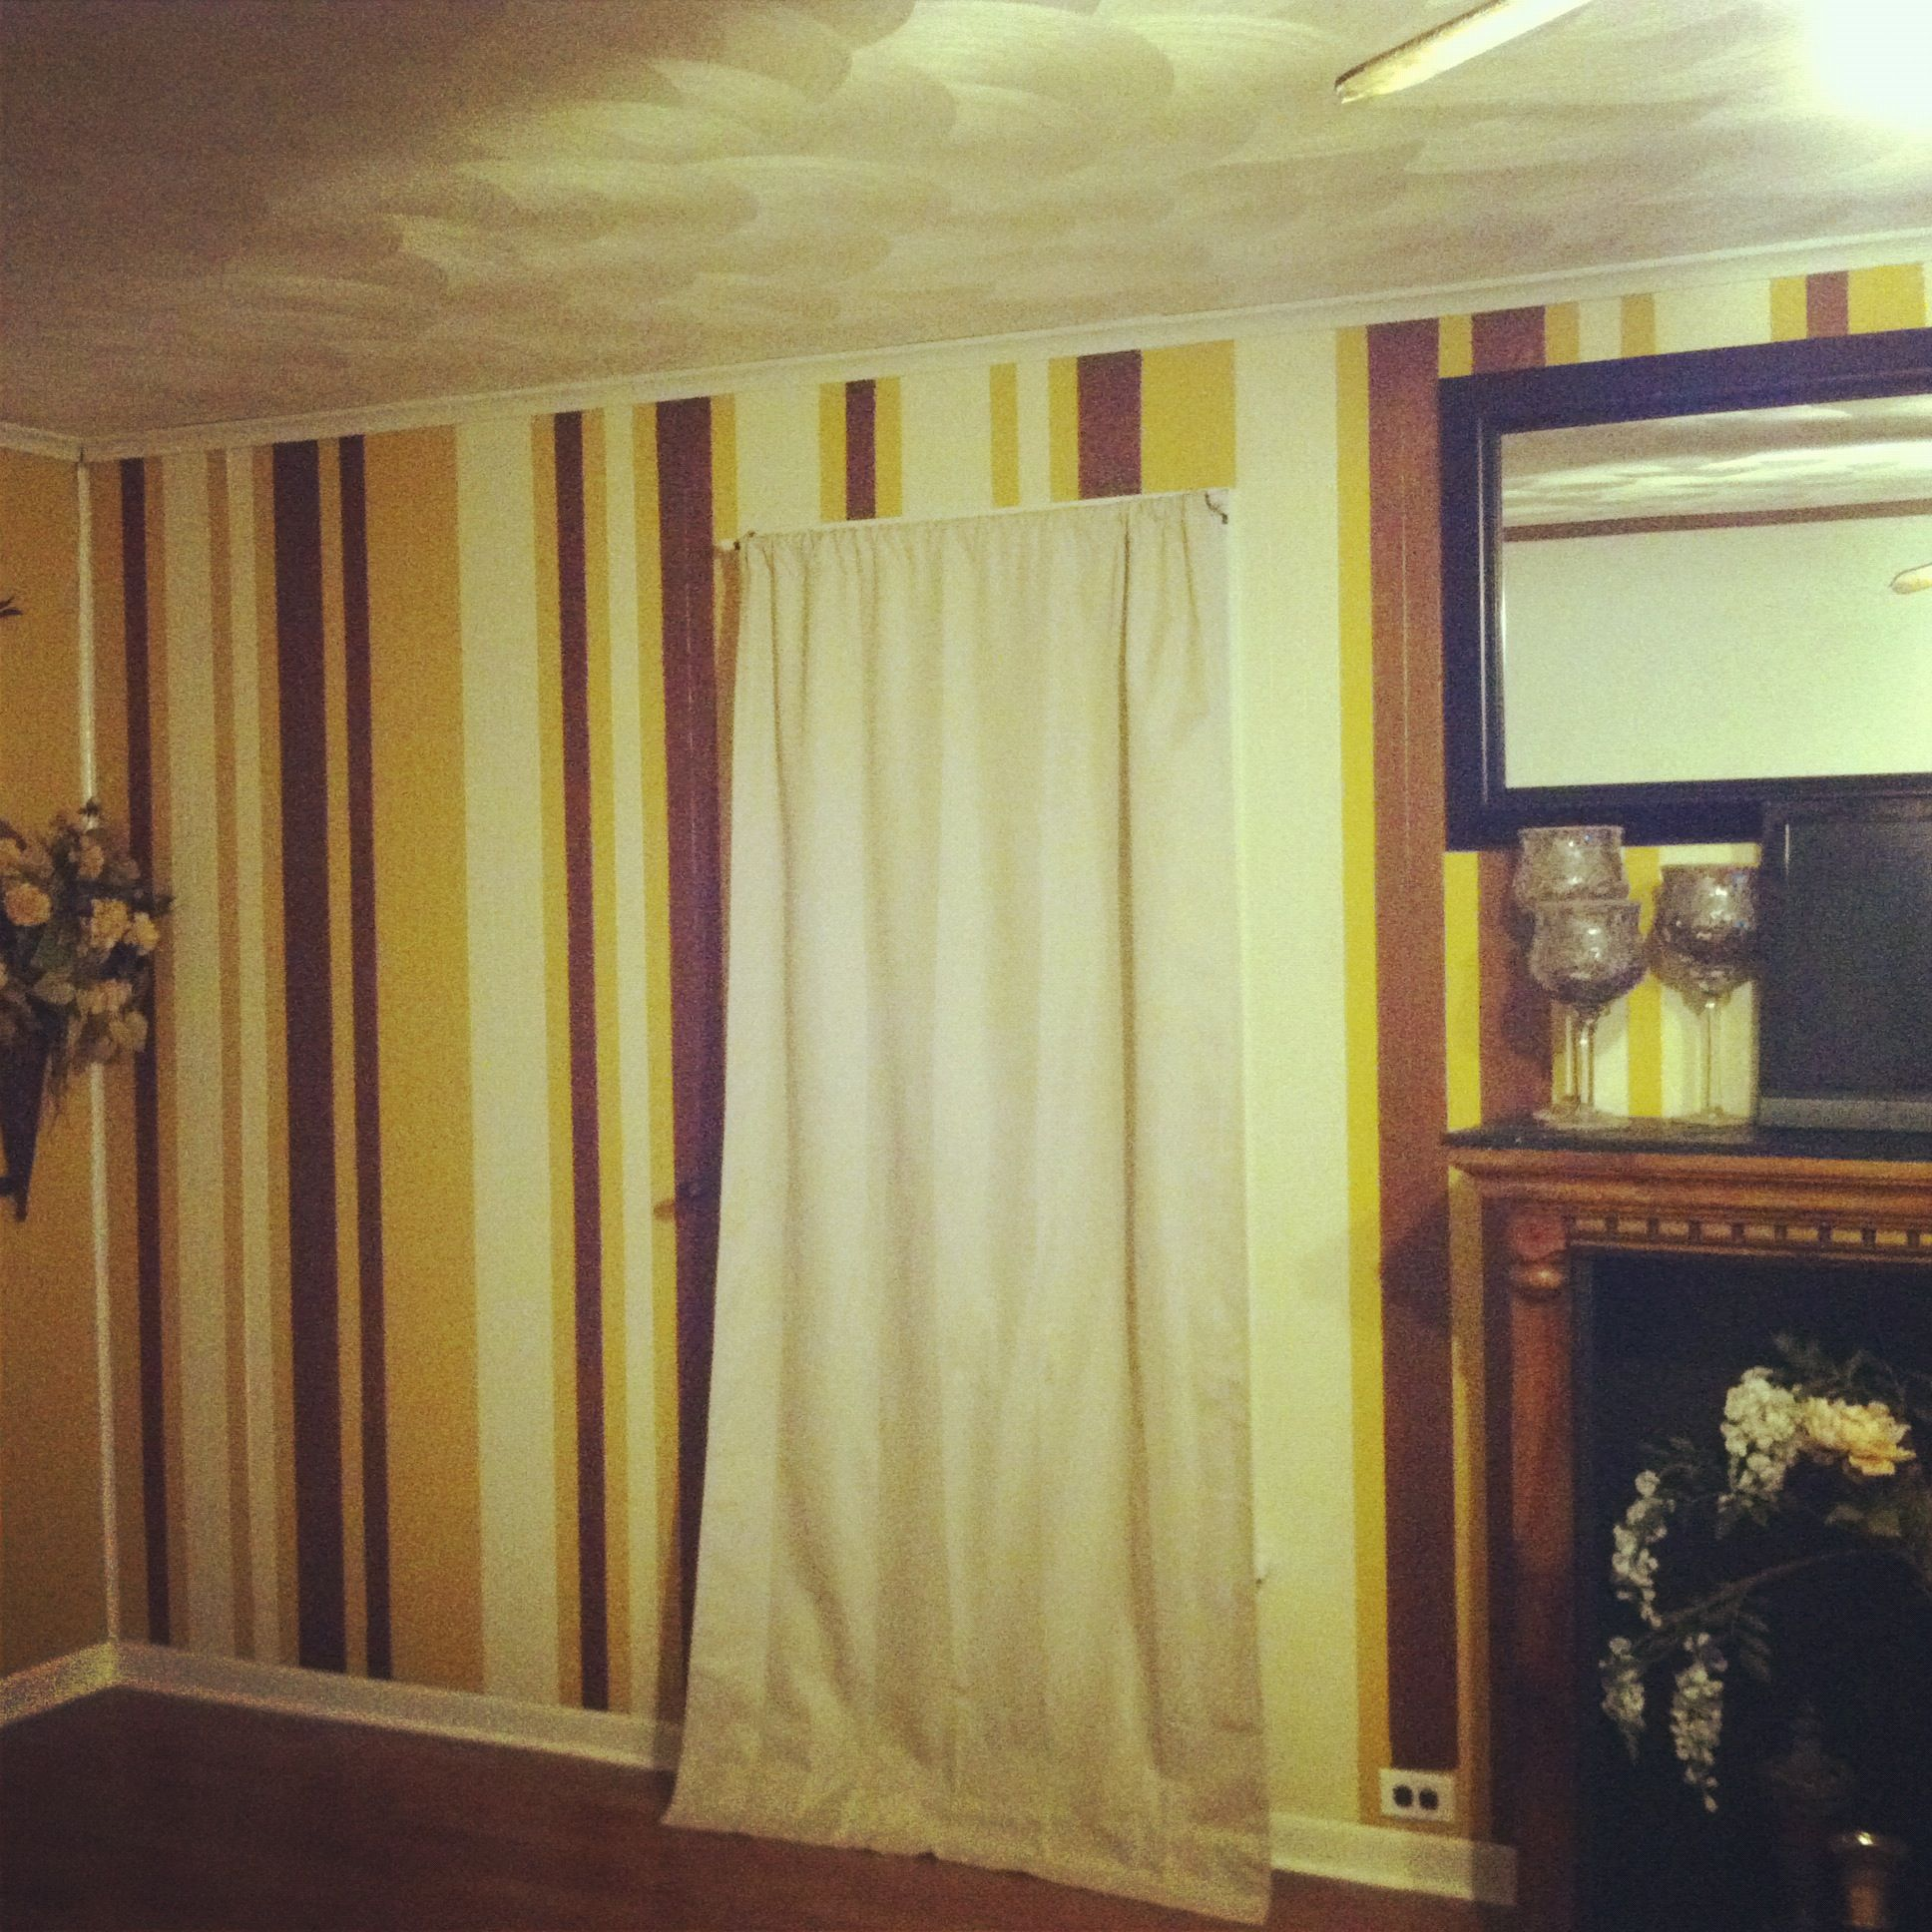 Pinstripe walls in barcode pattern to disguise ugly paneling | Home ...